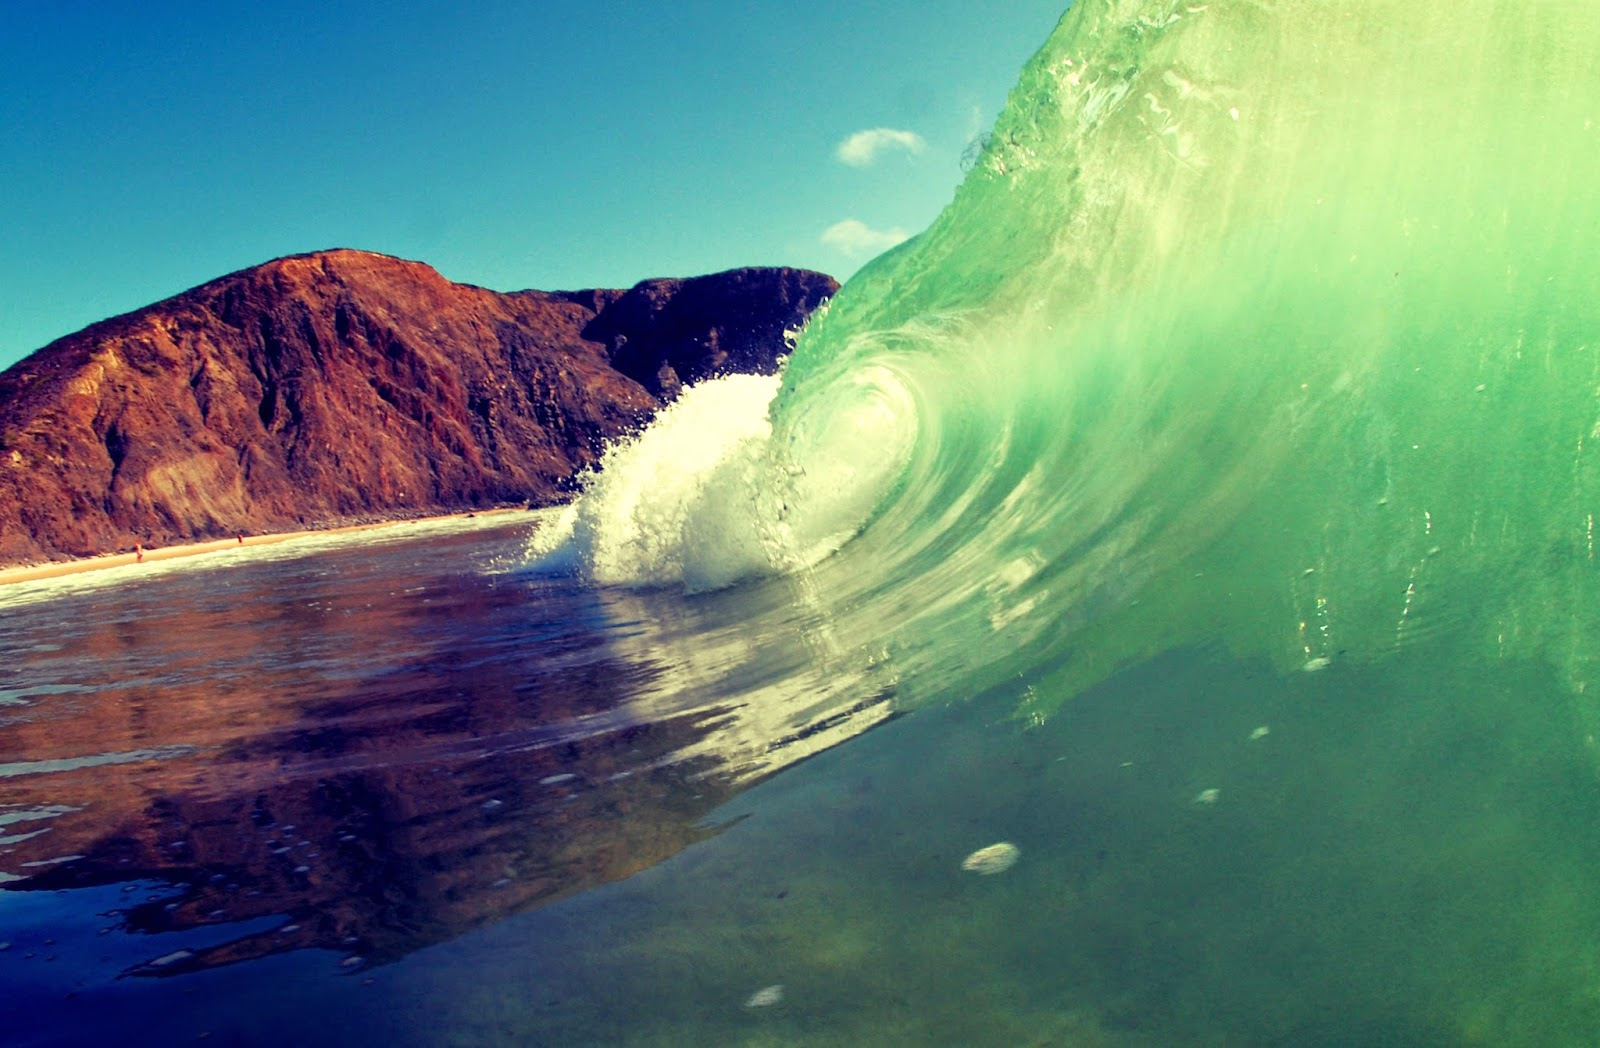 Surf Blog - The Top 7 surf beaches in the Algarve, Portugal